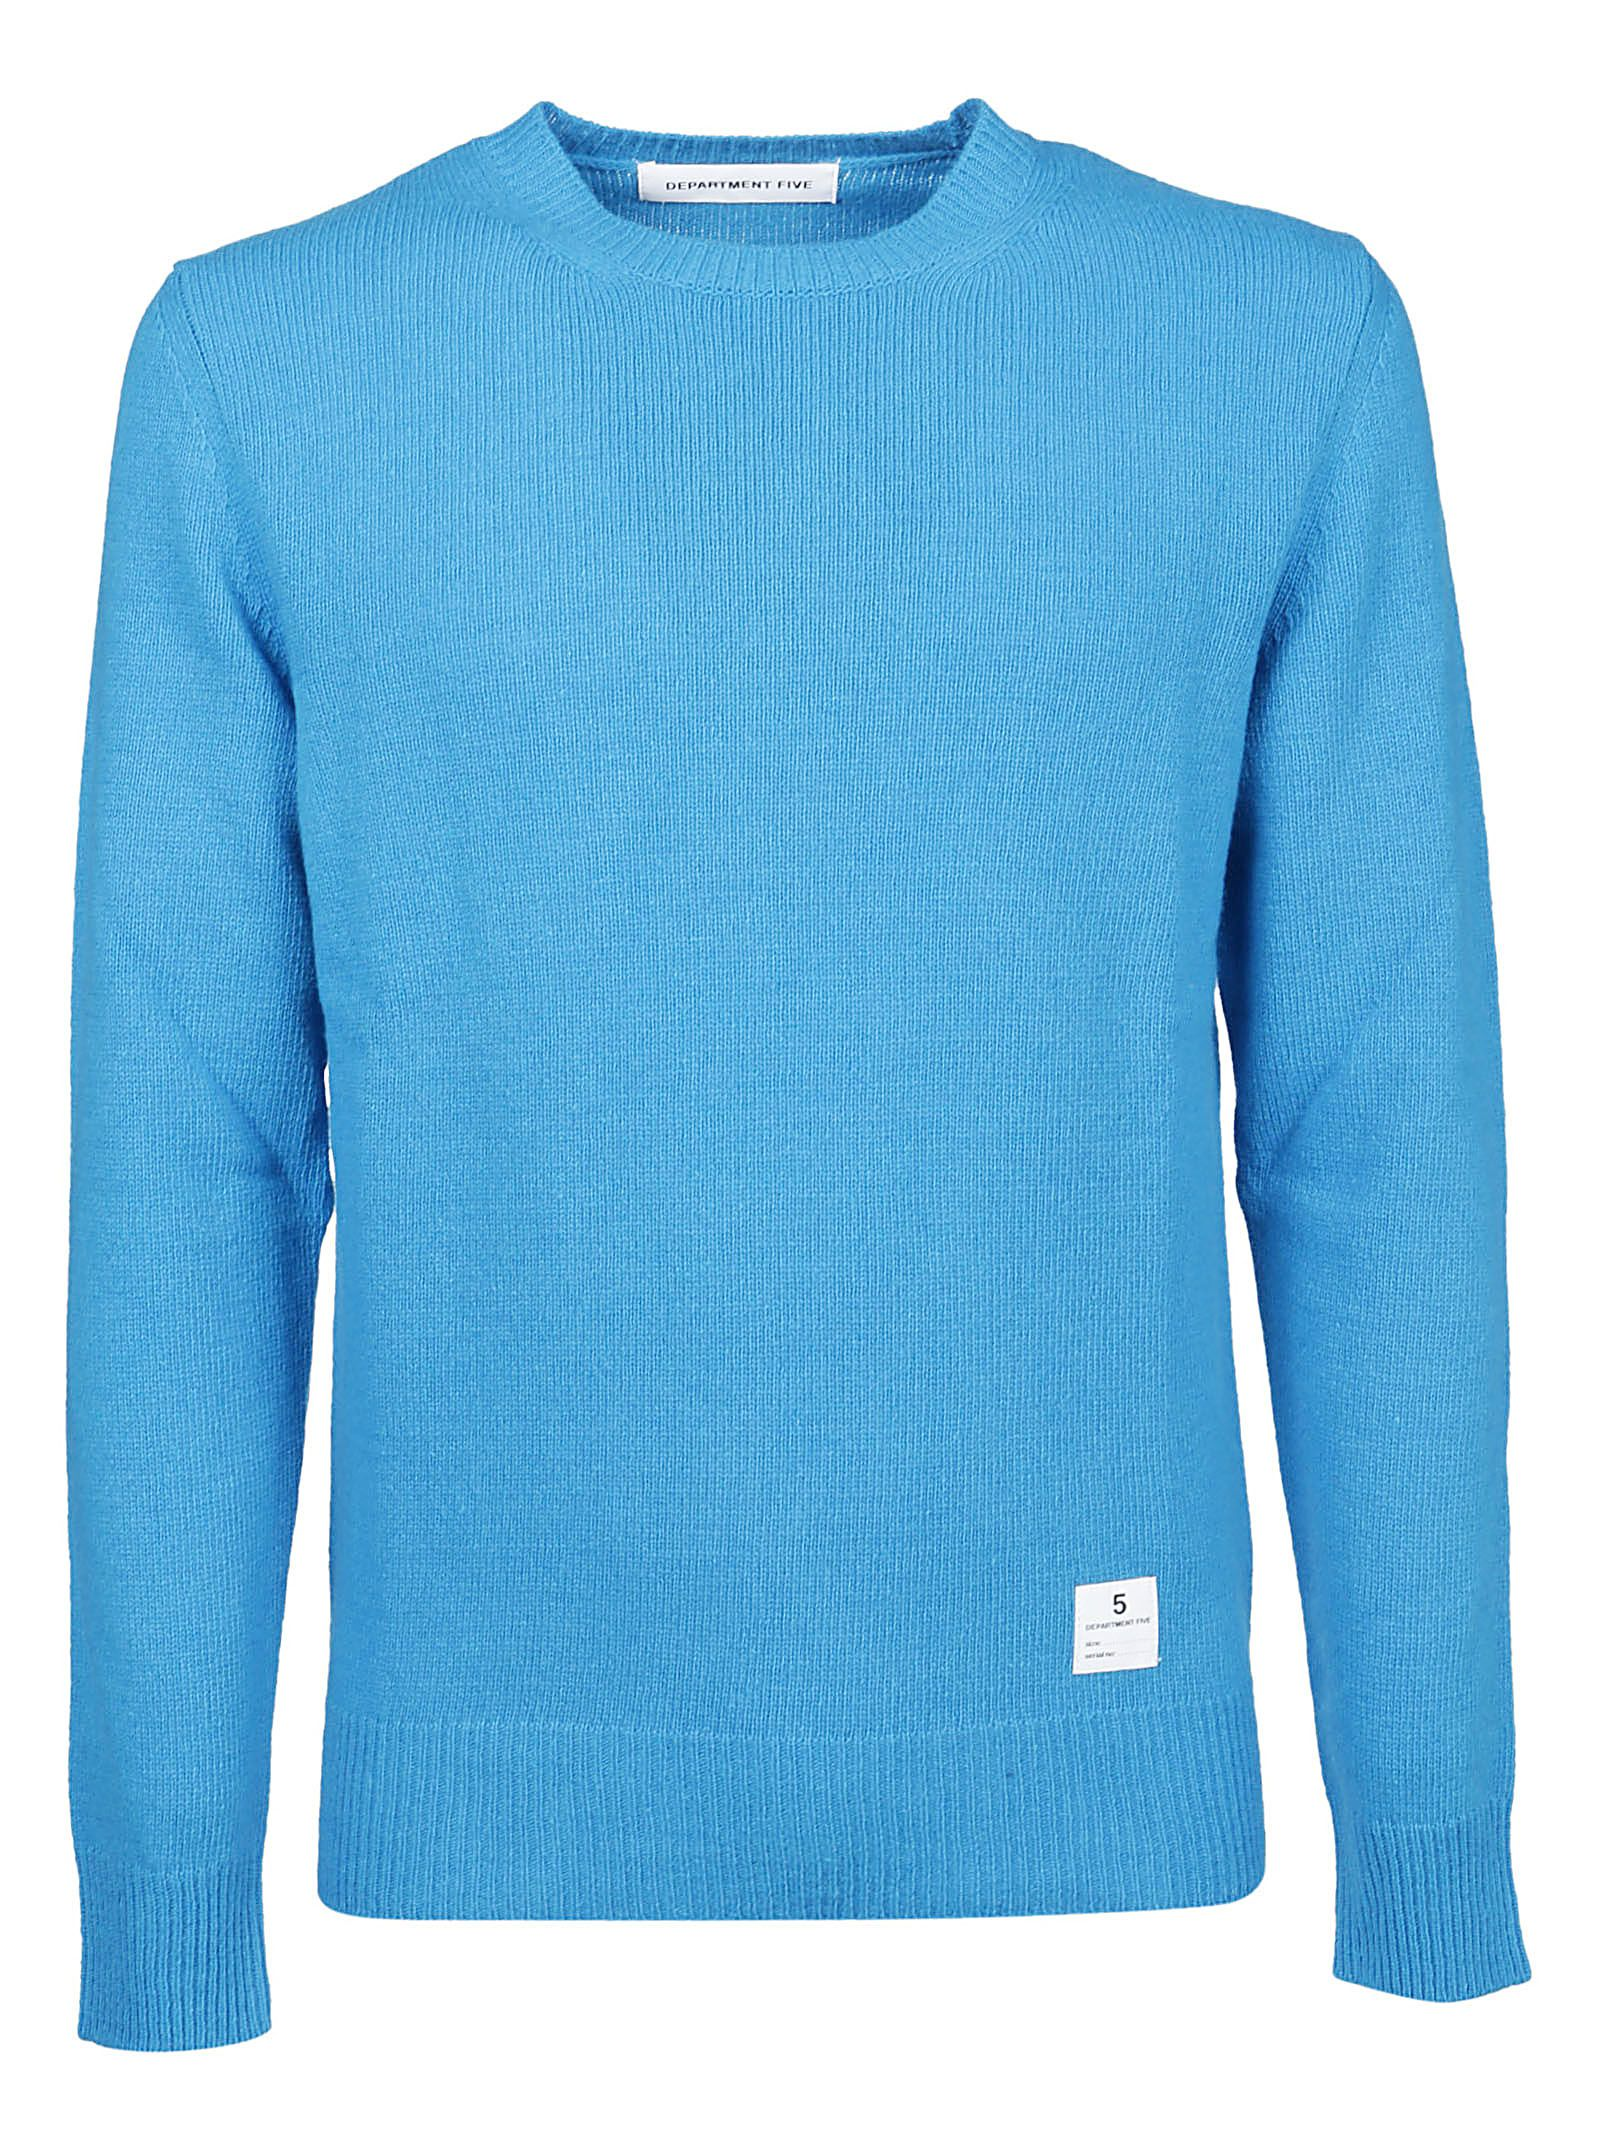 DEPARTMENT FIVE MEN'S U19M21FF190VE112 LIGHT BLUE WOOL SWEATER